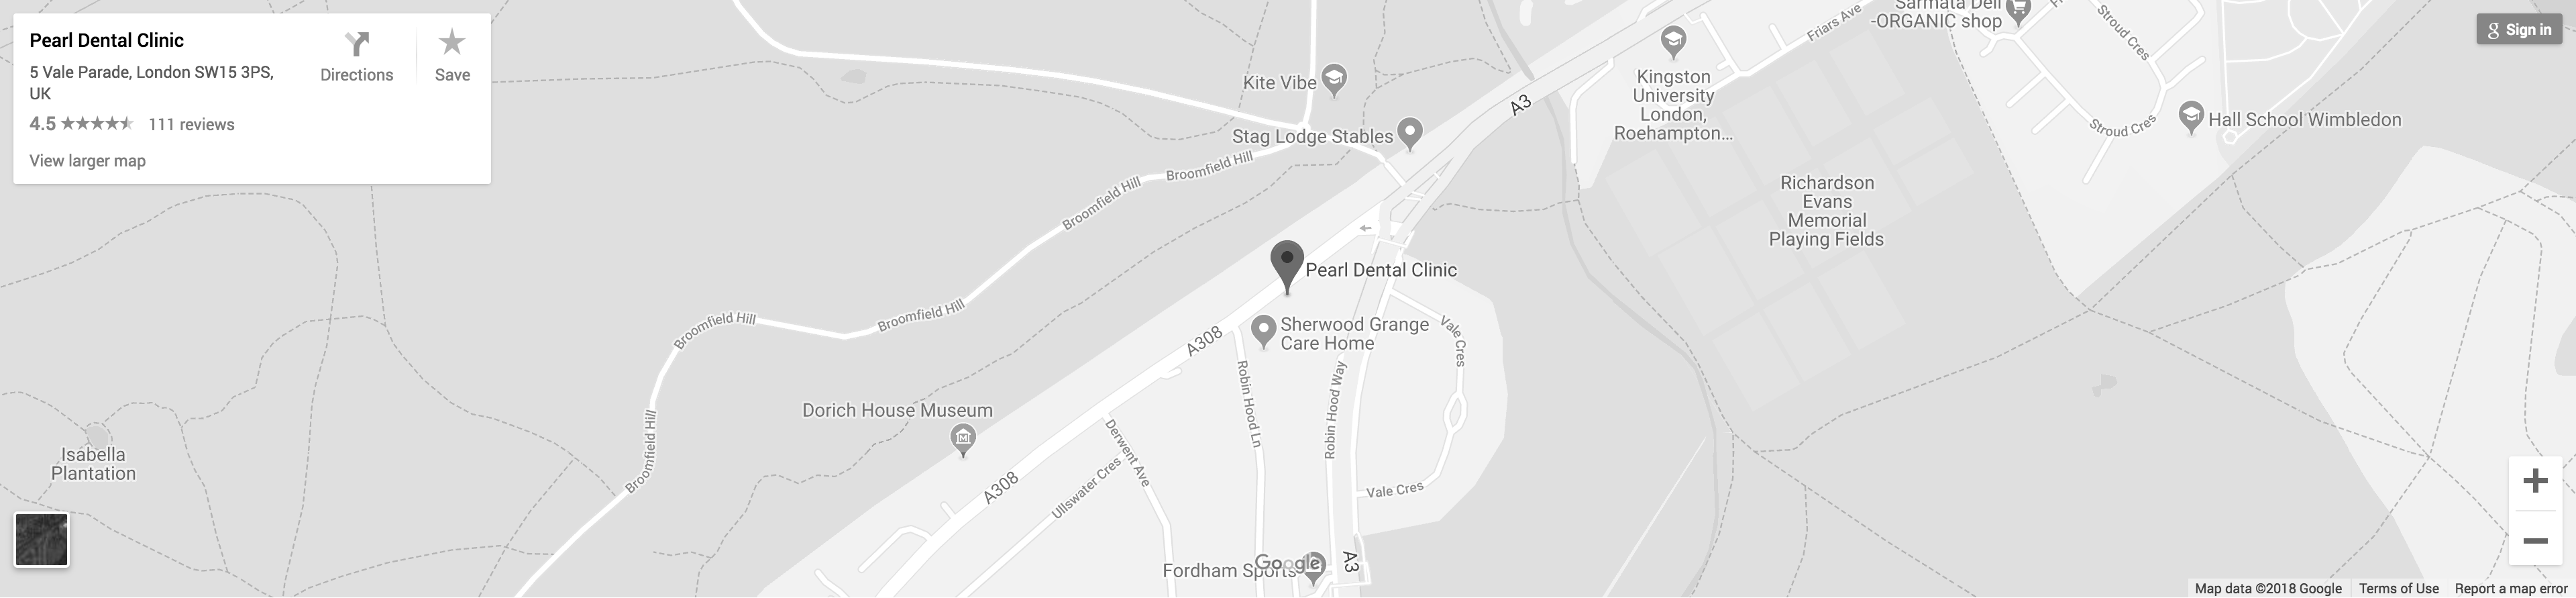 Google Map - Pearl Dental Clinic